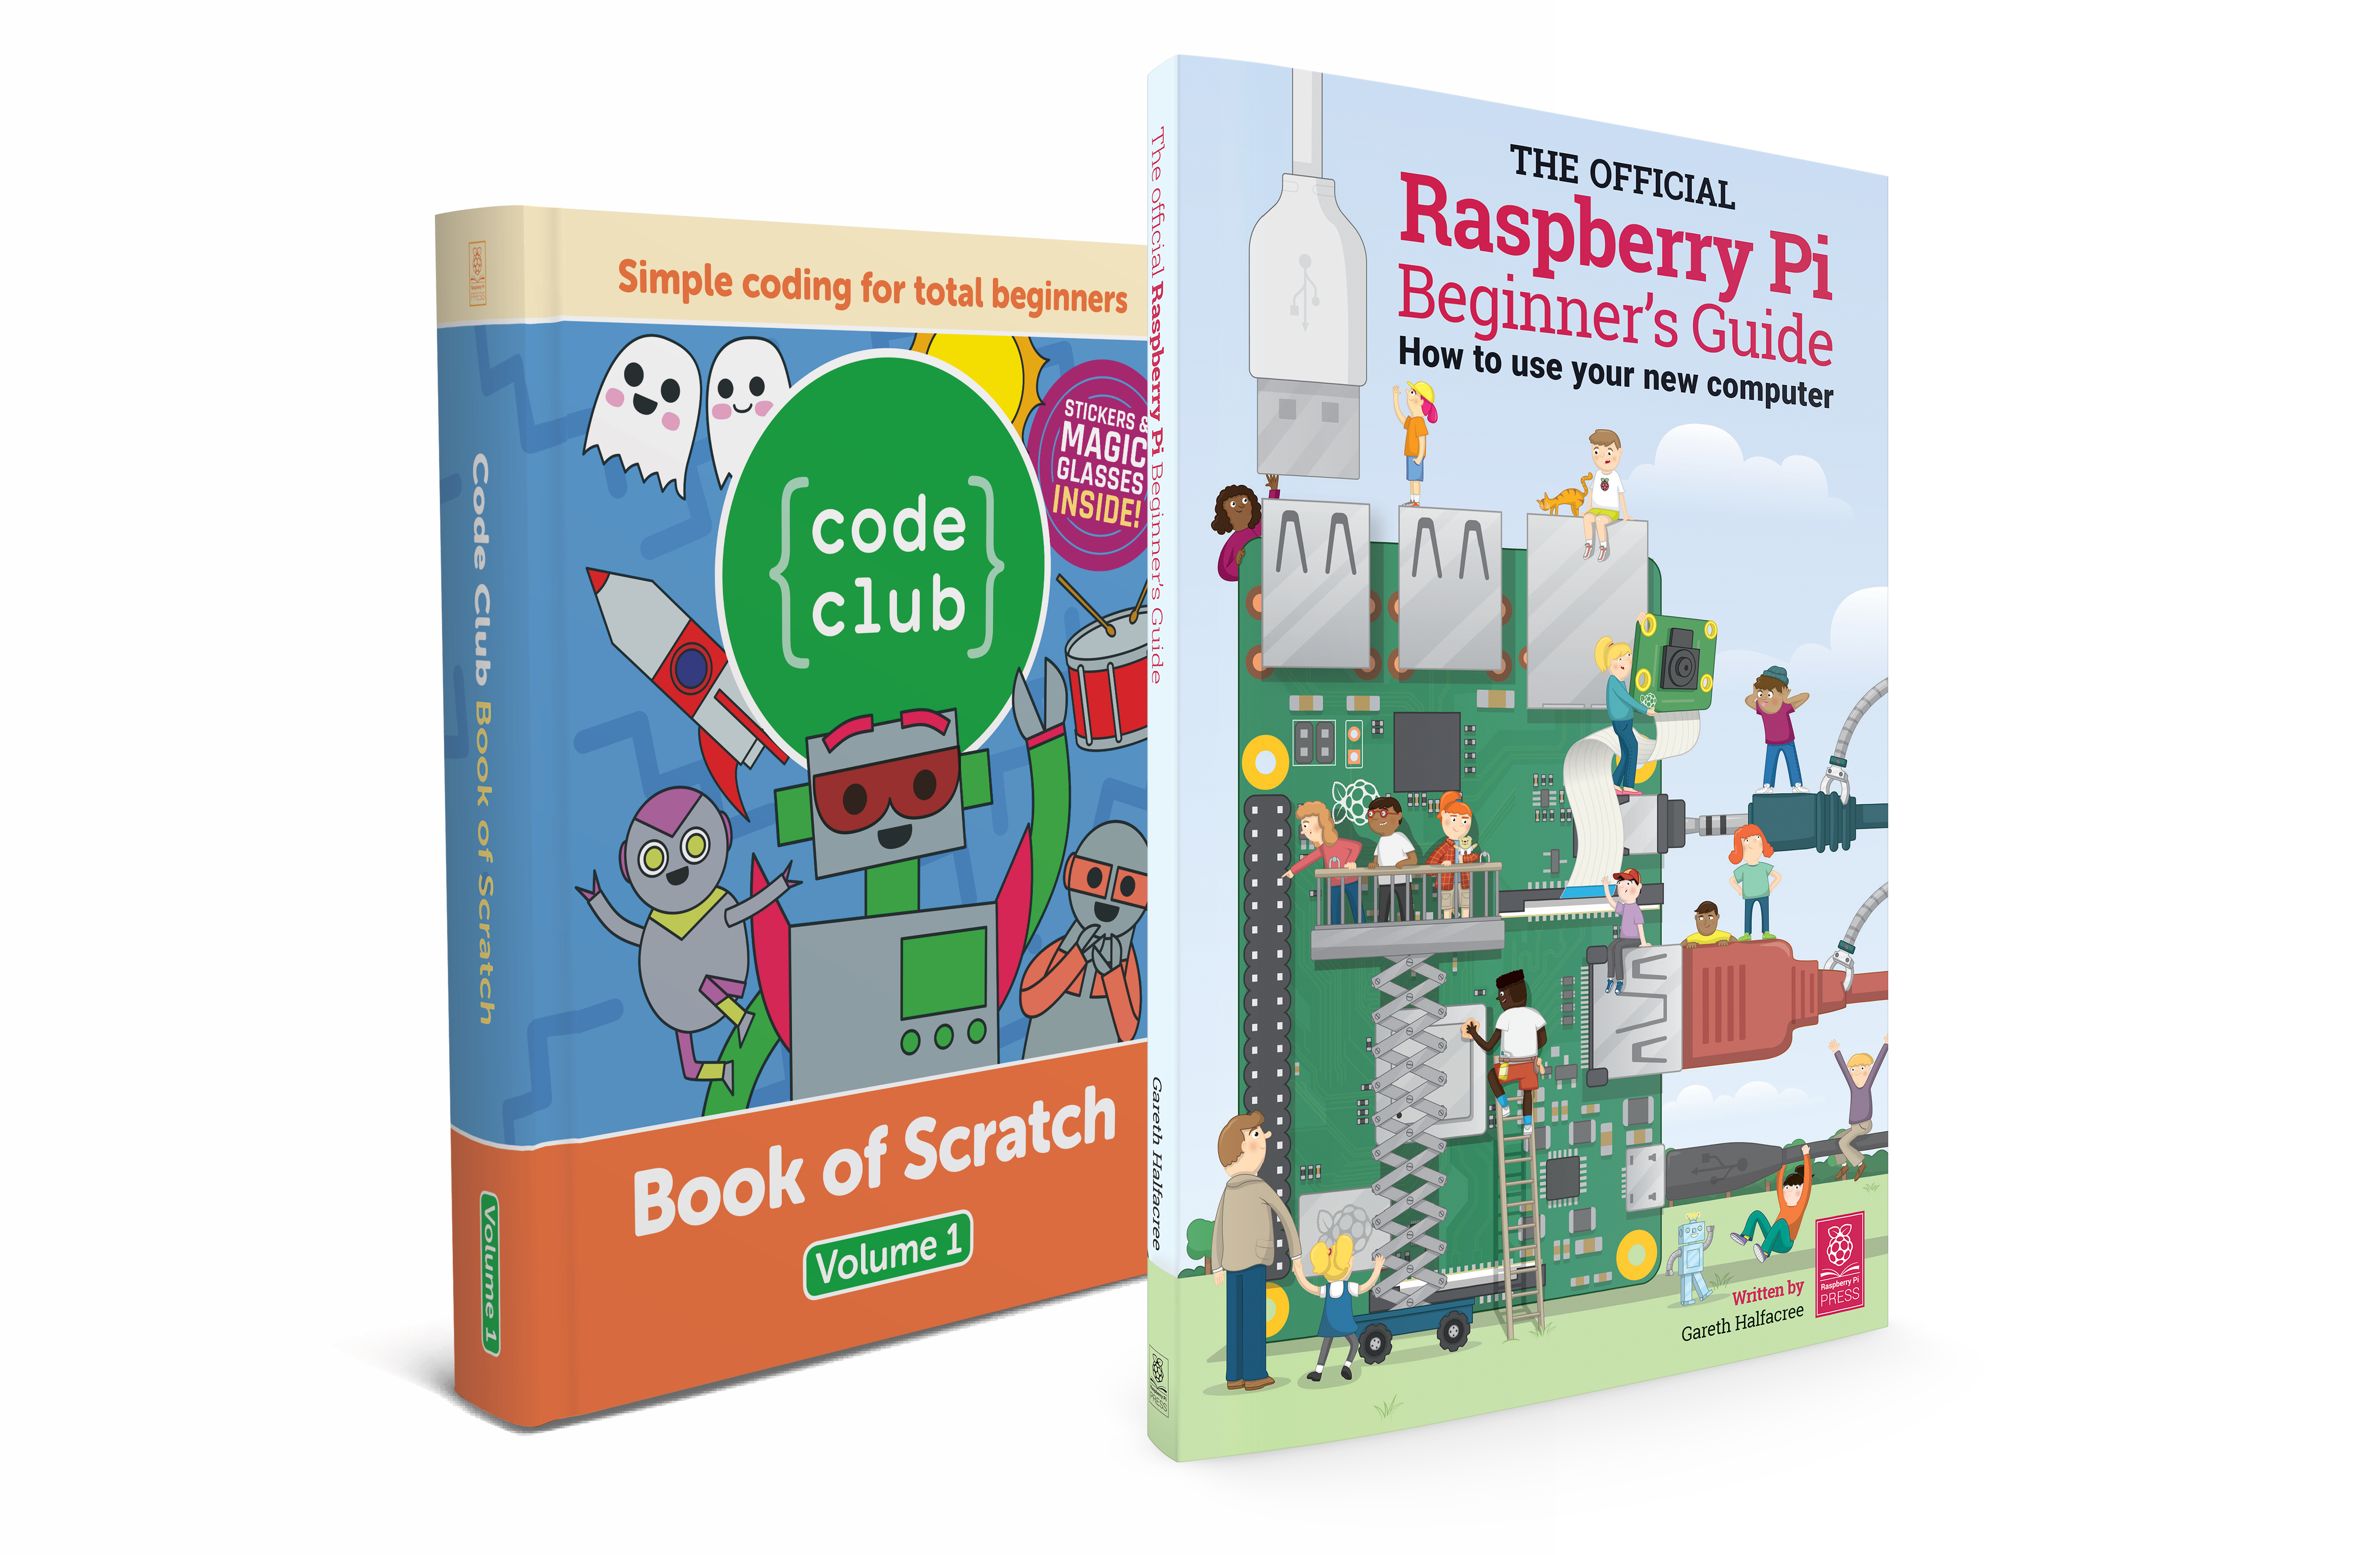 The Raspberry Pi Beginner's Guide is out now (and it's huge!)